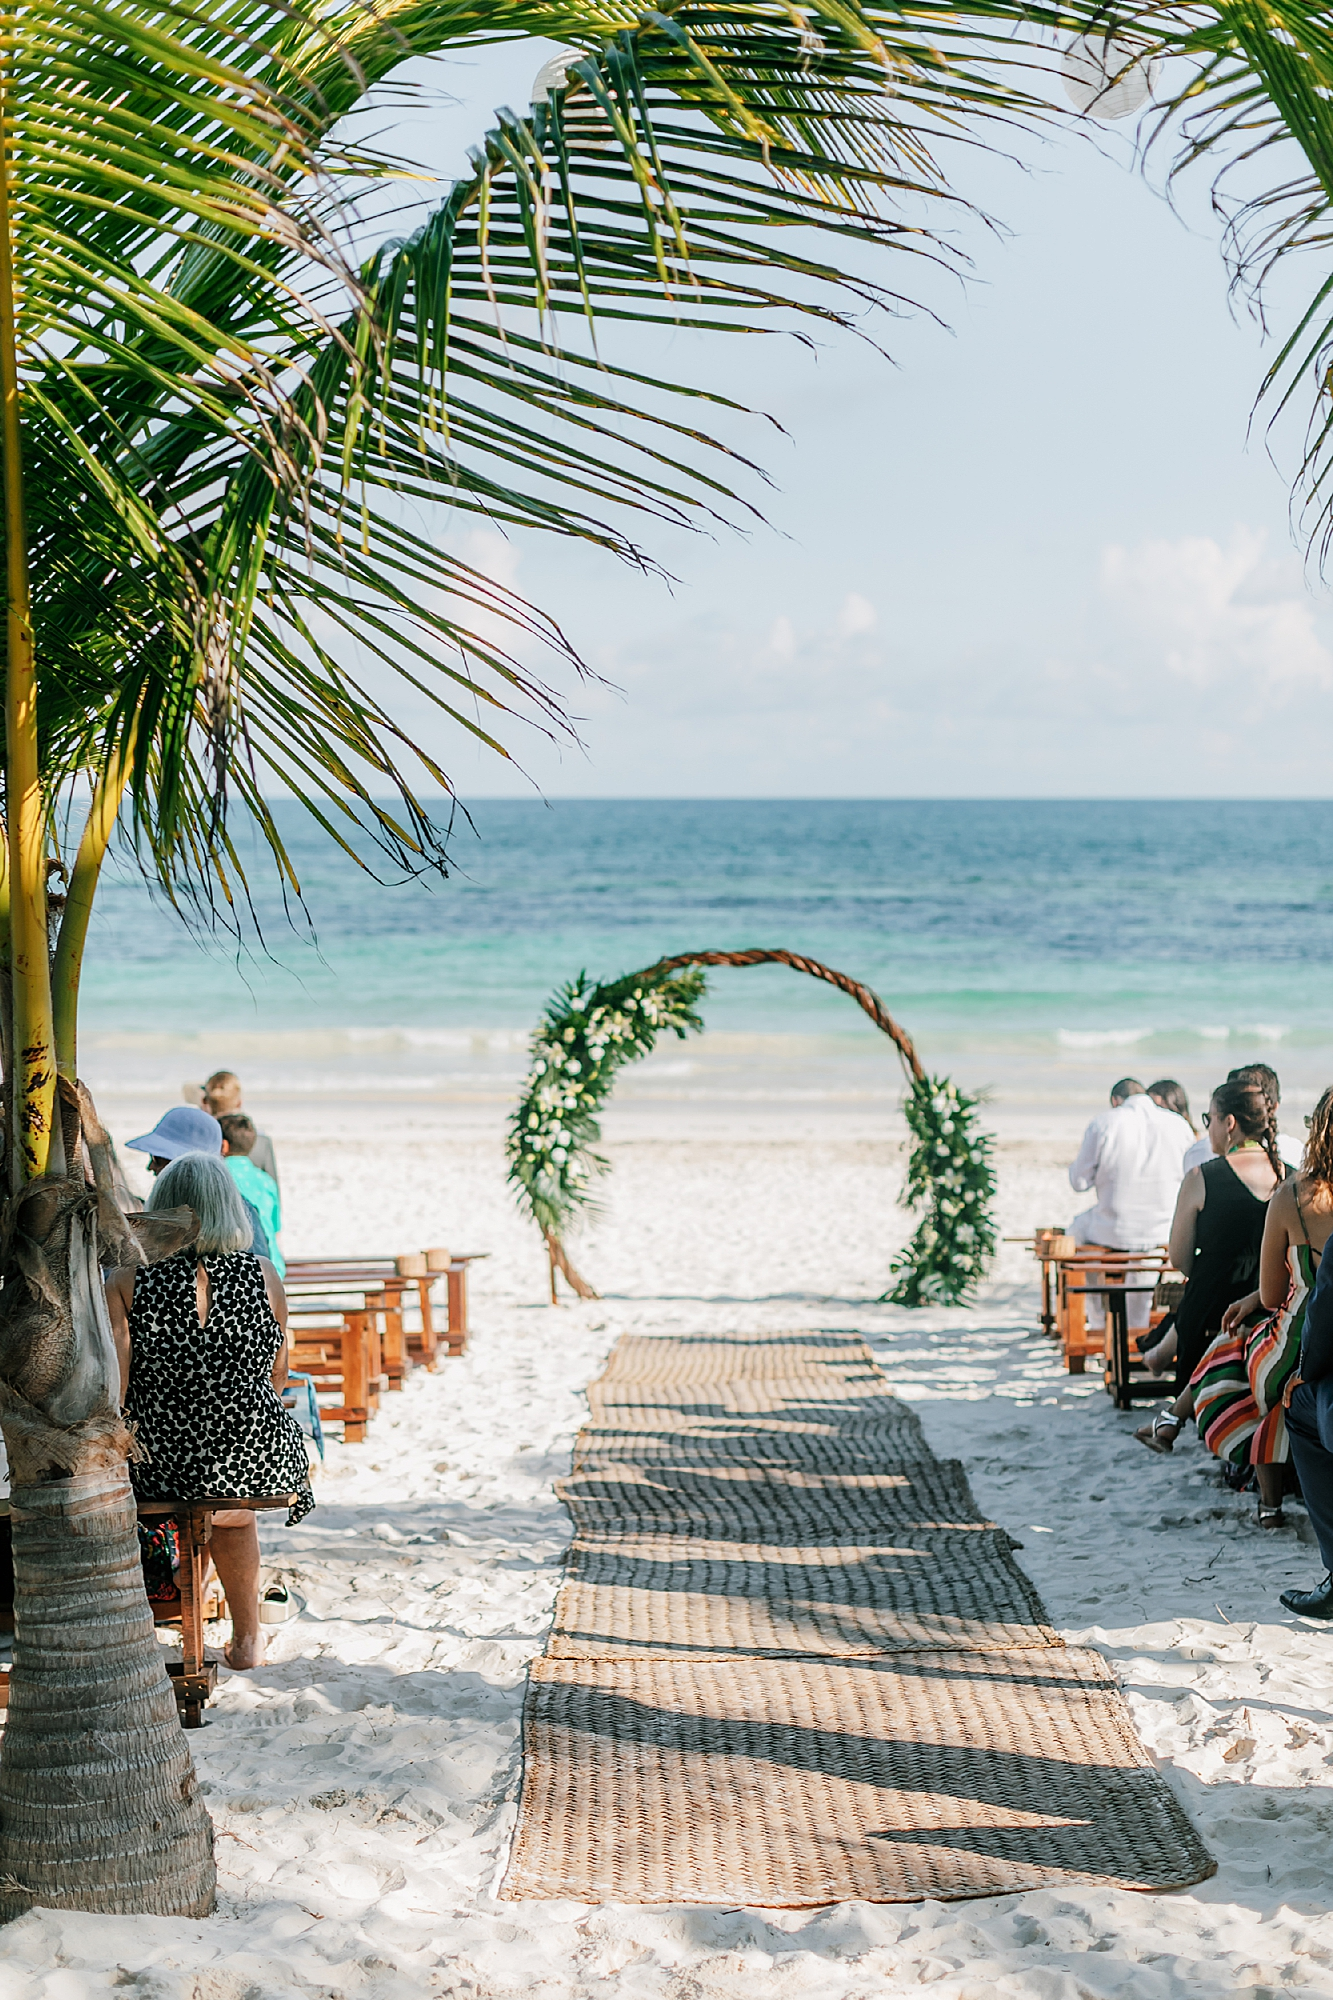 Stylish and Candid Destination Film Wedding Photography in Tulum Mexico by Magdalena Studios 0009